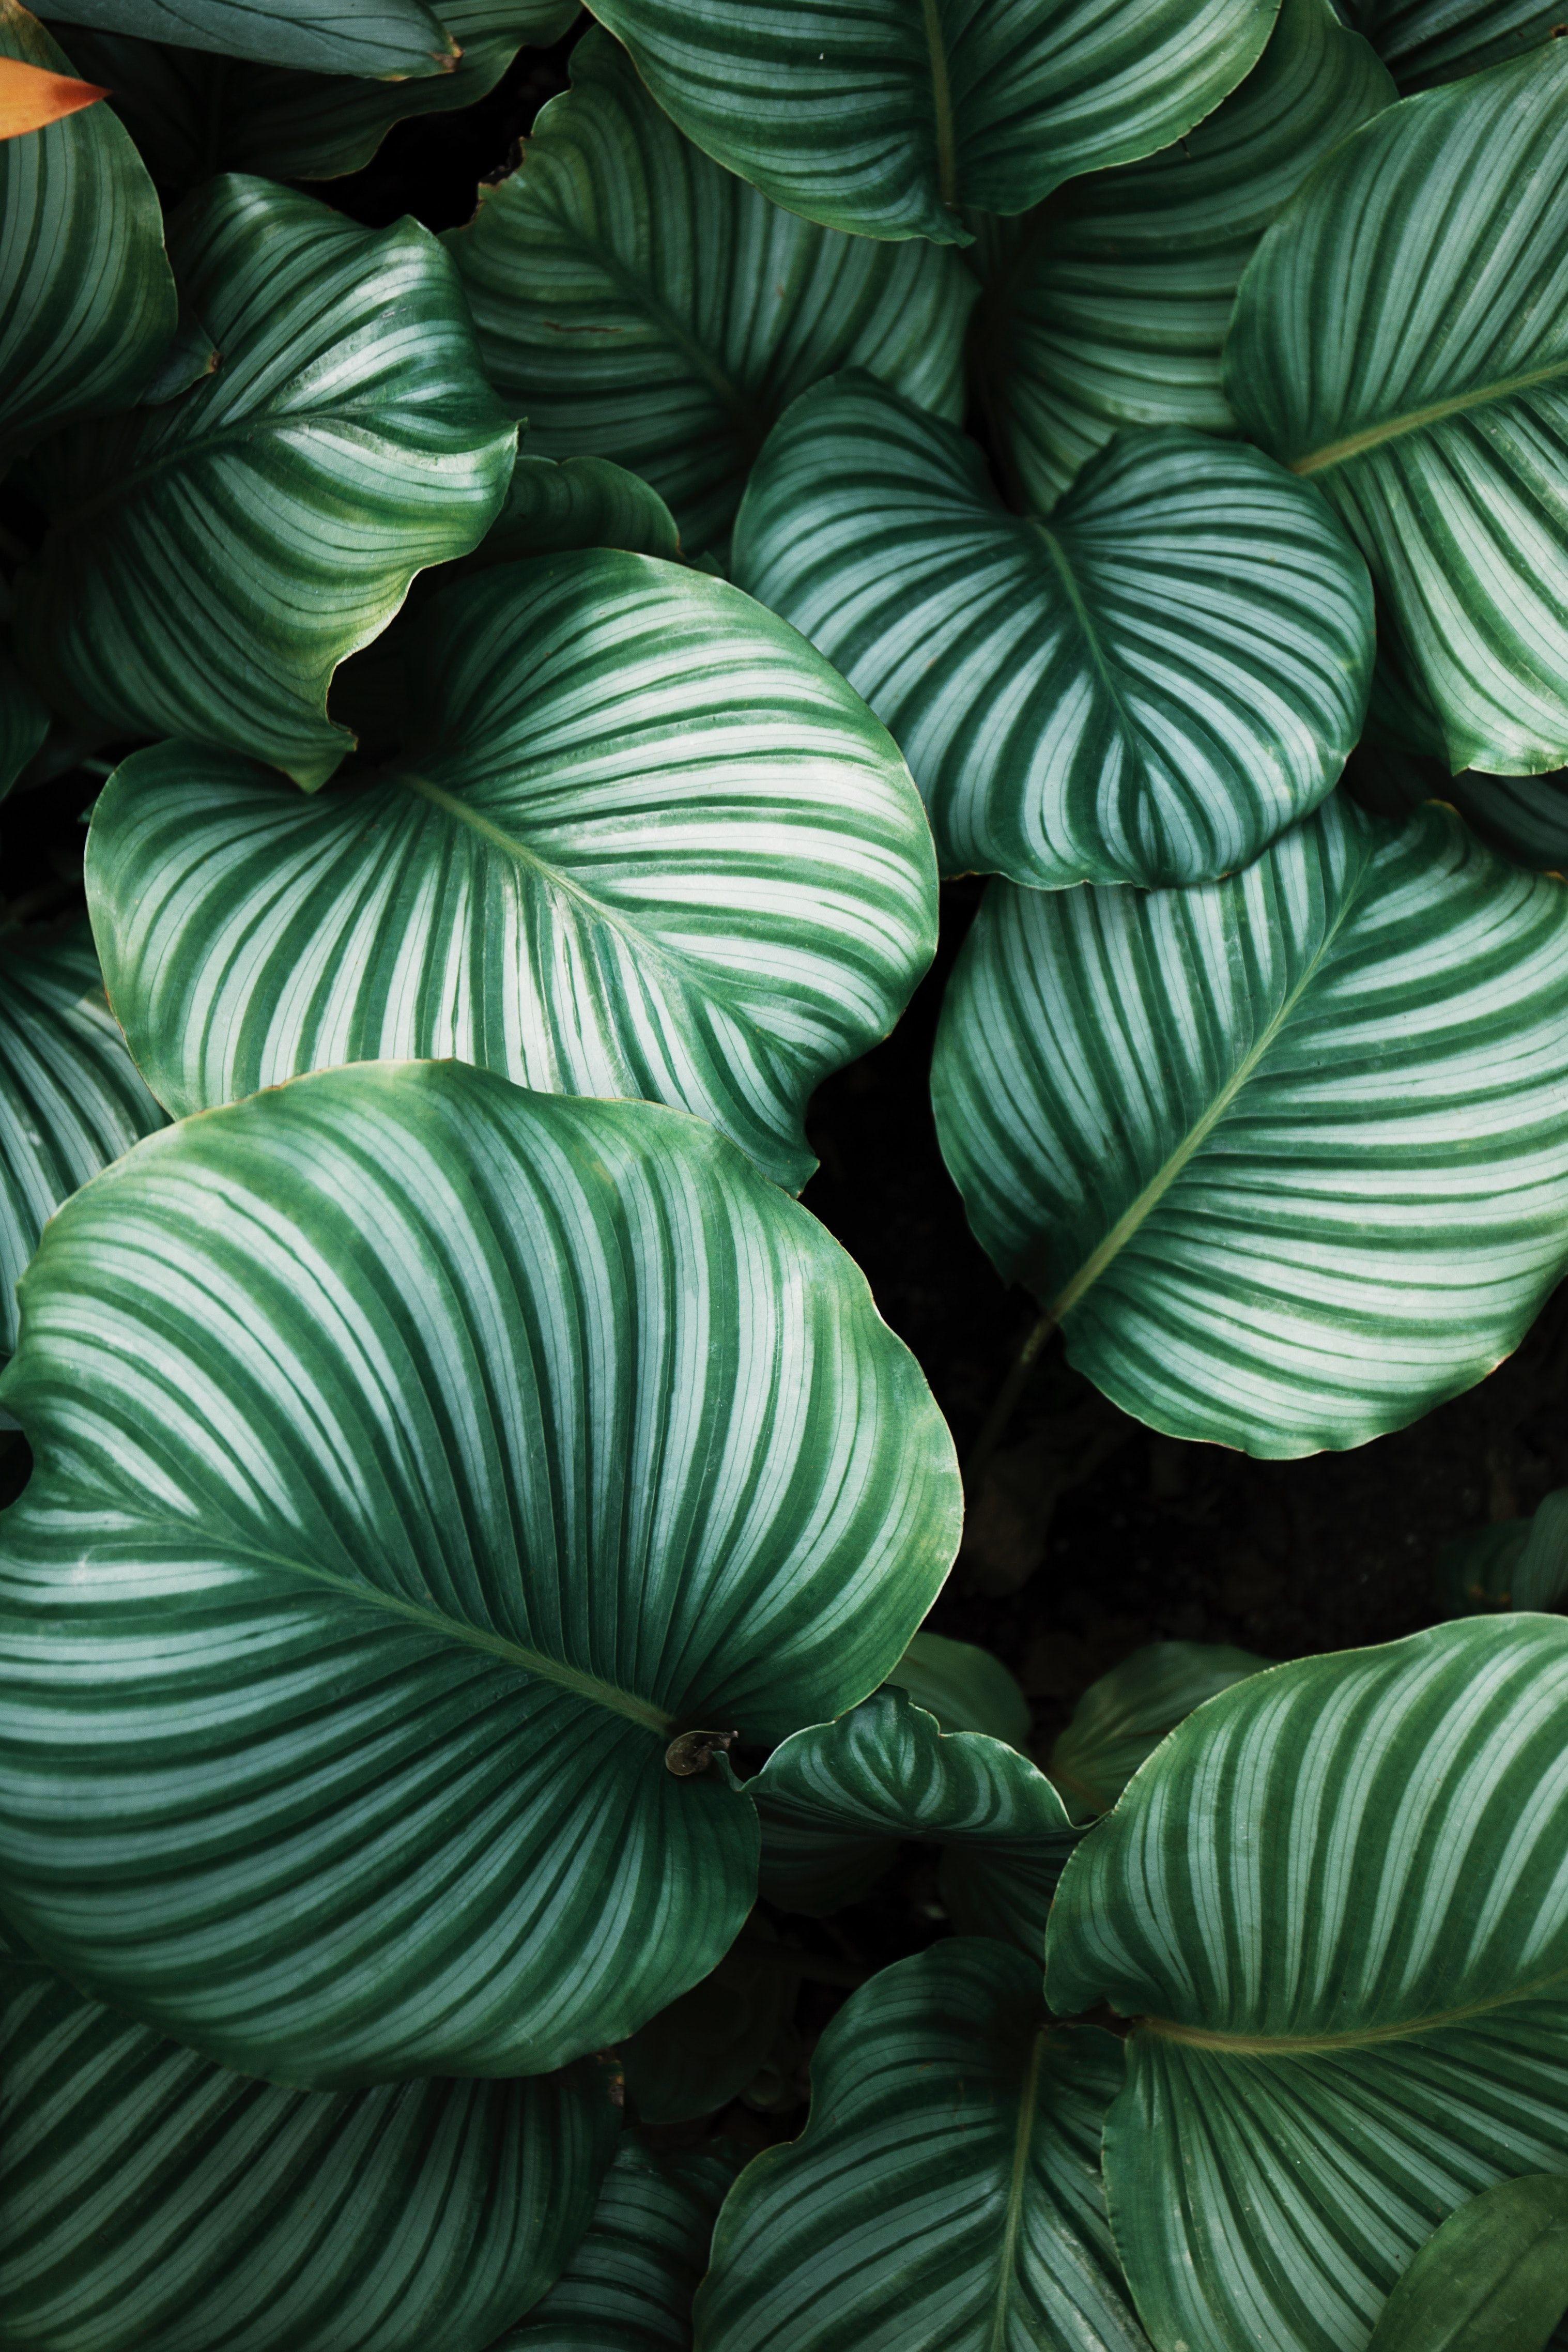 green and white leafed plants Plant wallpaper, Leaves